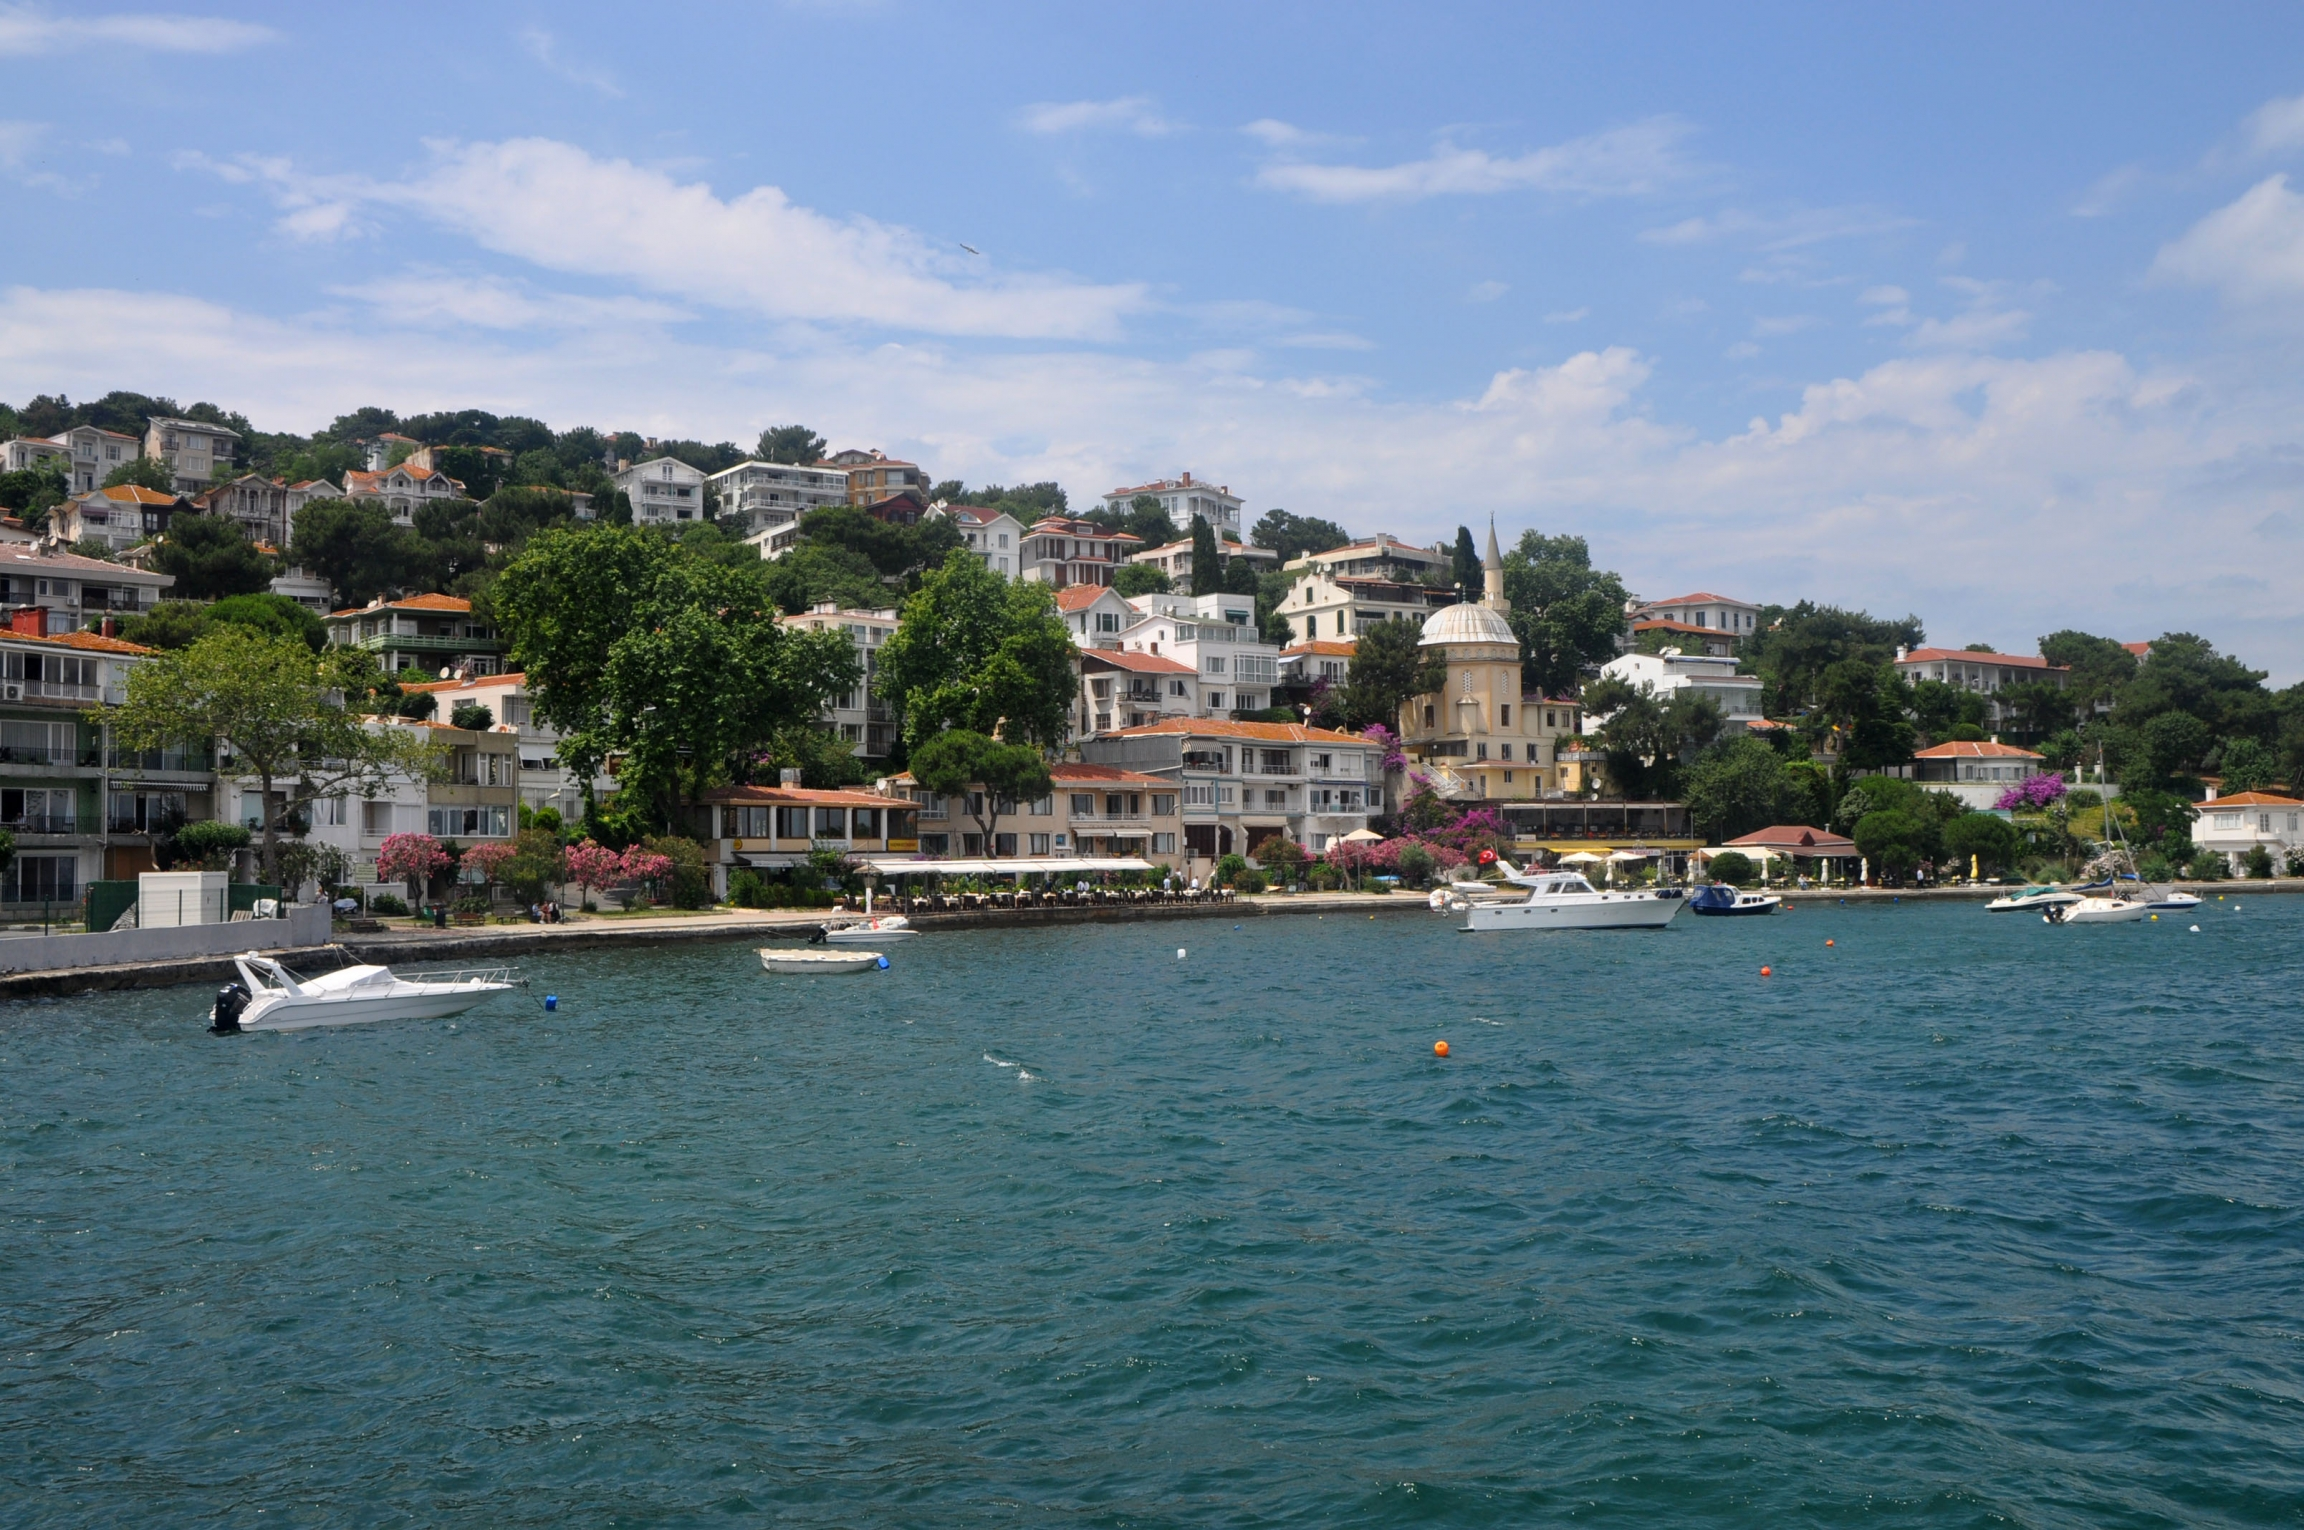 The island of Büyükada in the Marmara Sea, a popular summer destination for Turkish residents and tourists alike. The sea snot outbreak this summer closed beaches for swimming and turned many off from a local specialty, grilled fish.